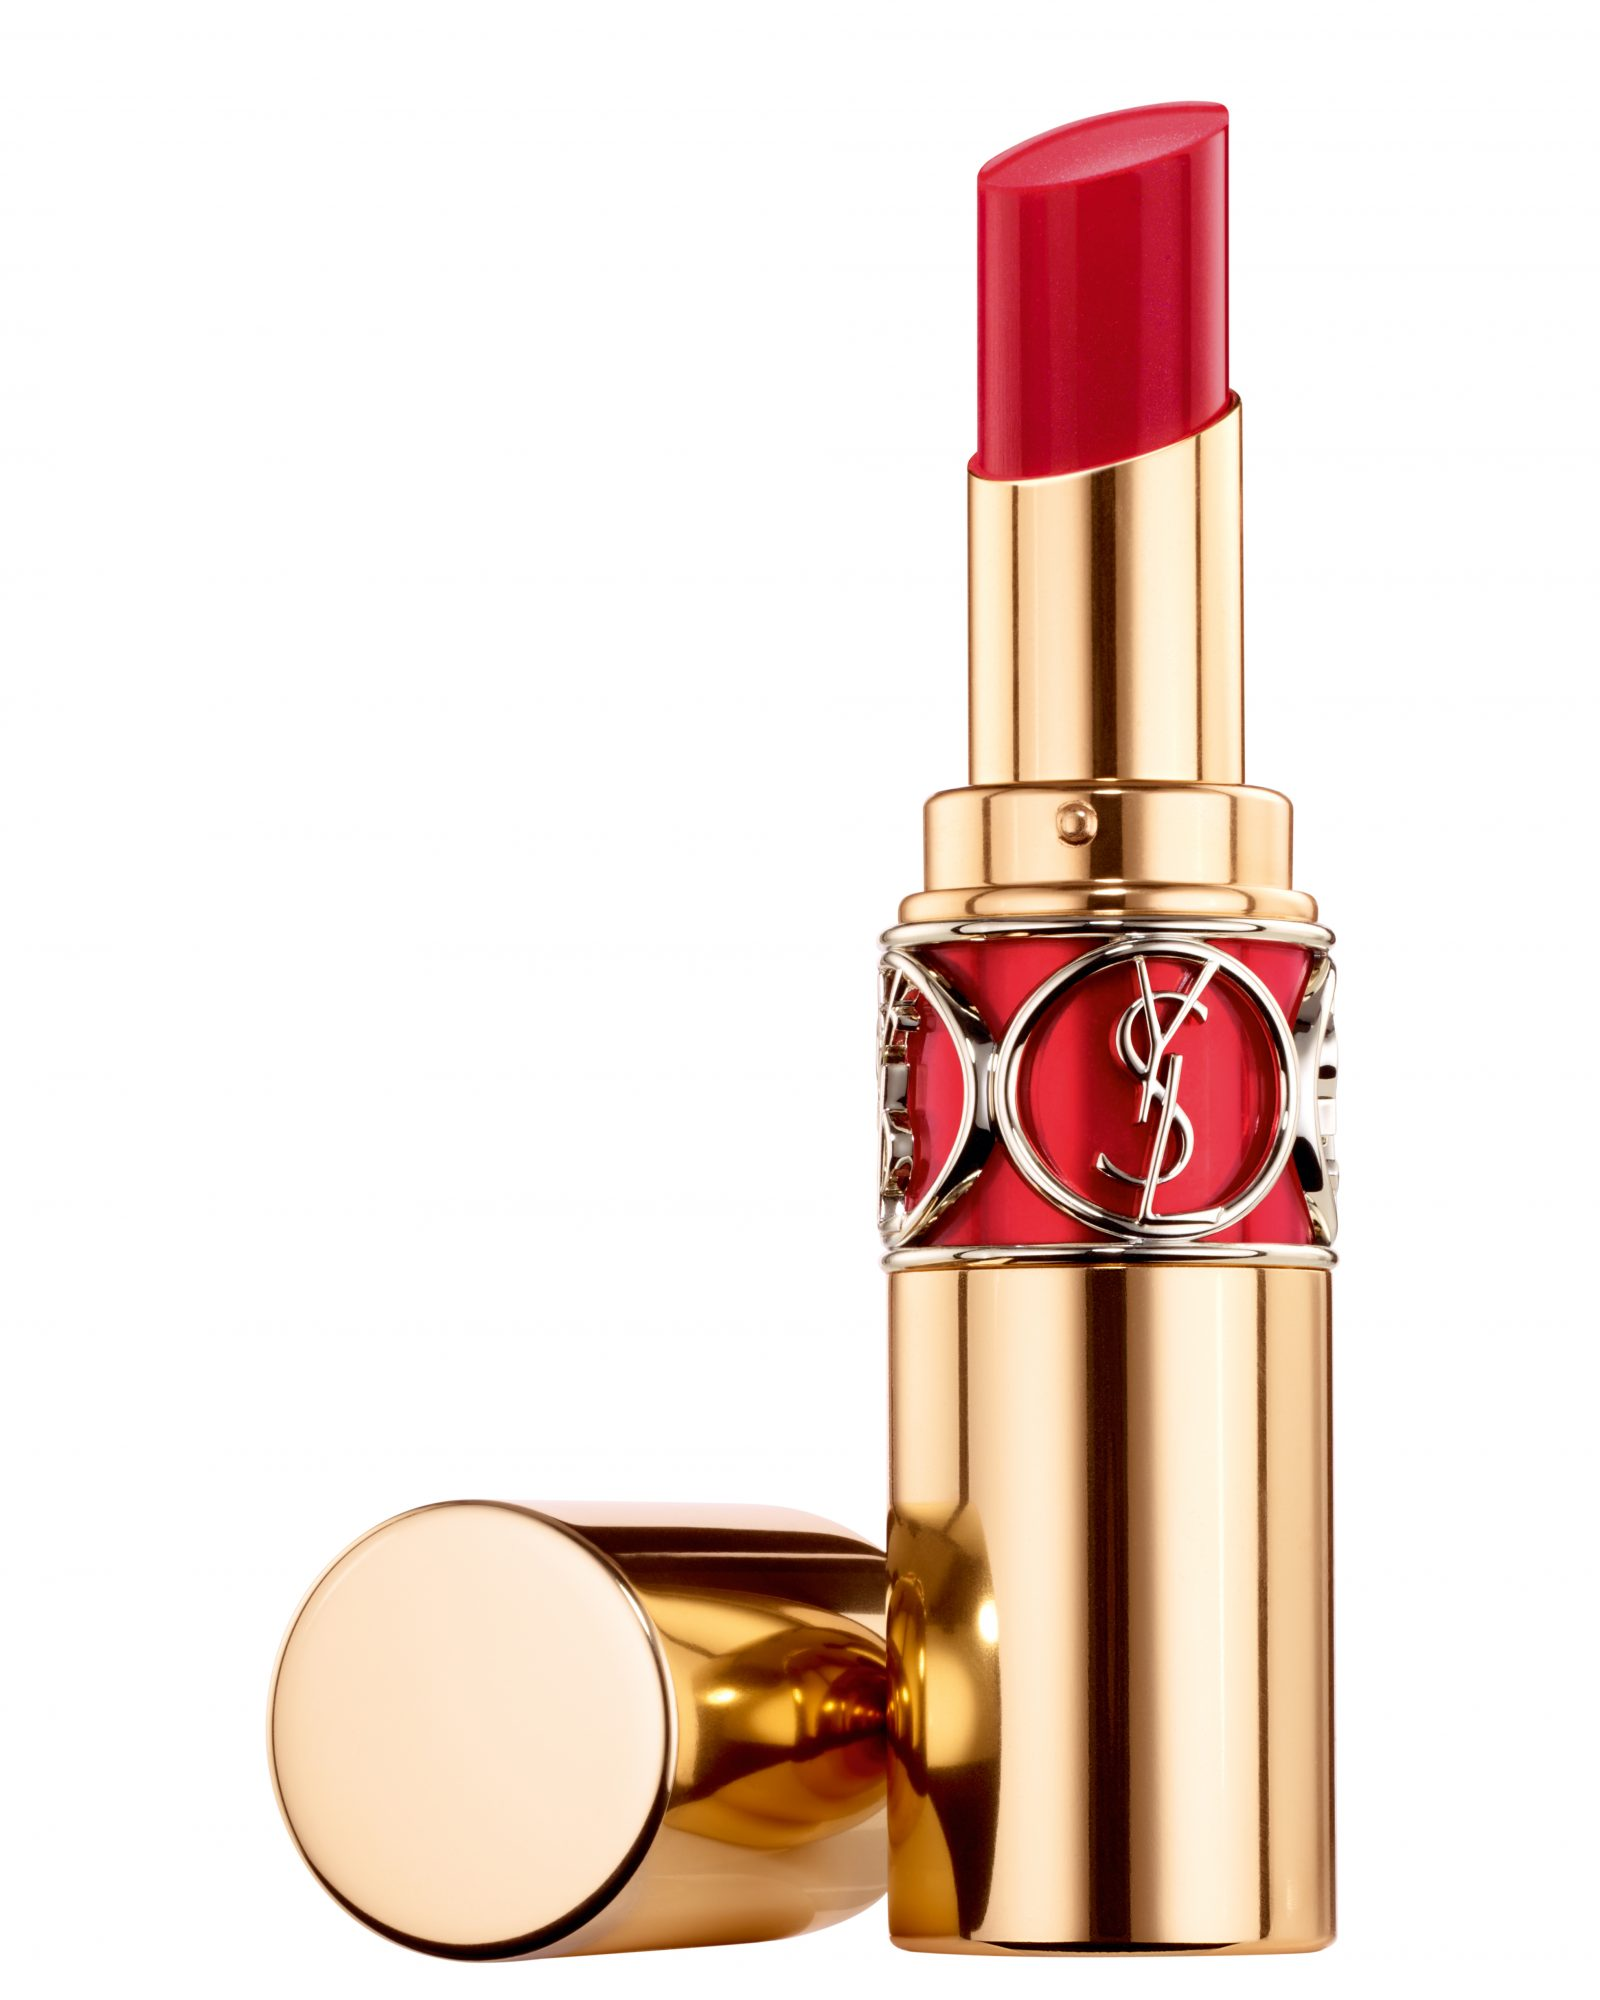 ysl-rouge-volup-shine-no-4-rouge-danger-0314.jpg